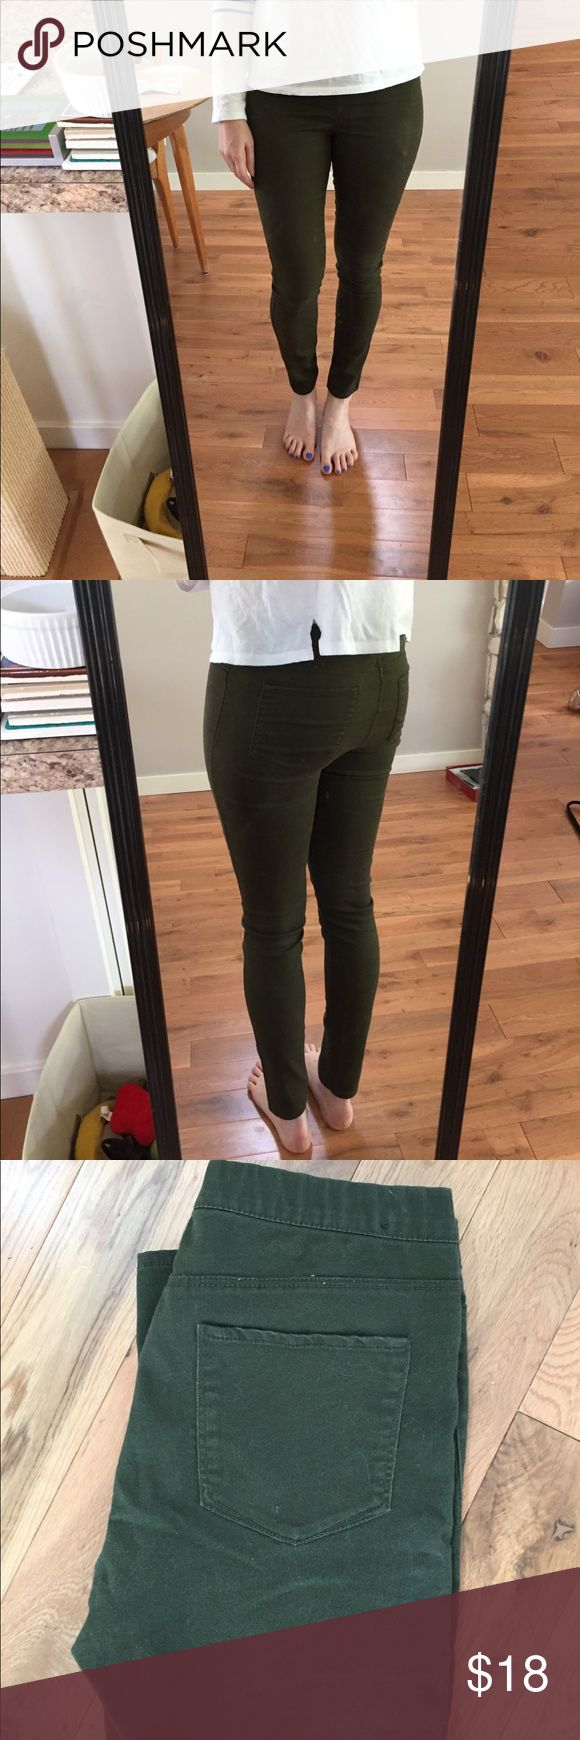 H&M army green pants Beautiful shade of khaki army green. Size 8 from HM (I usually wear a 27 if that helps) these are super cute. Have pockets on the back to look like jeans, but they're a stretchy thick legging material with no zipper in the front and a stretchy waist. The best of both worlds, and perfect for fall and winter. H&M Pants Leggings